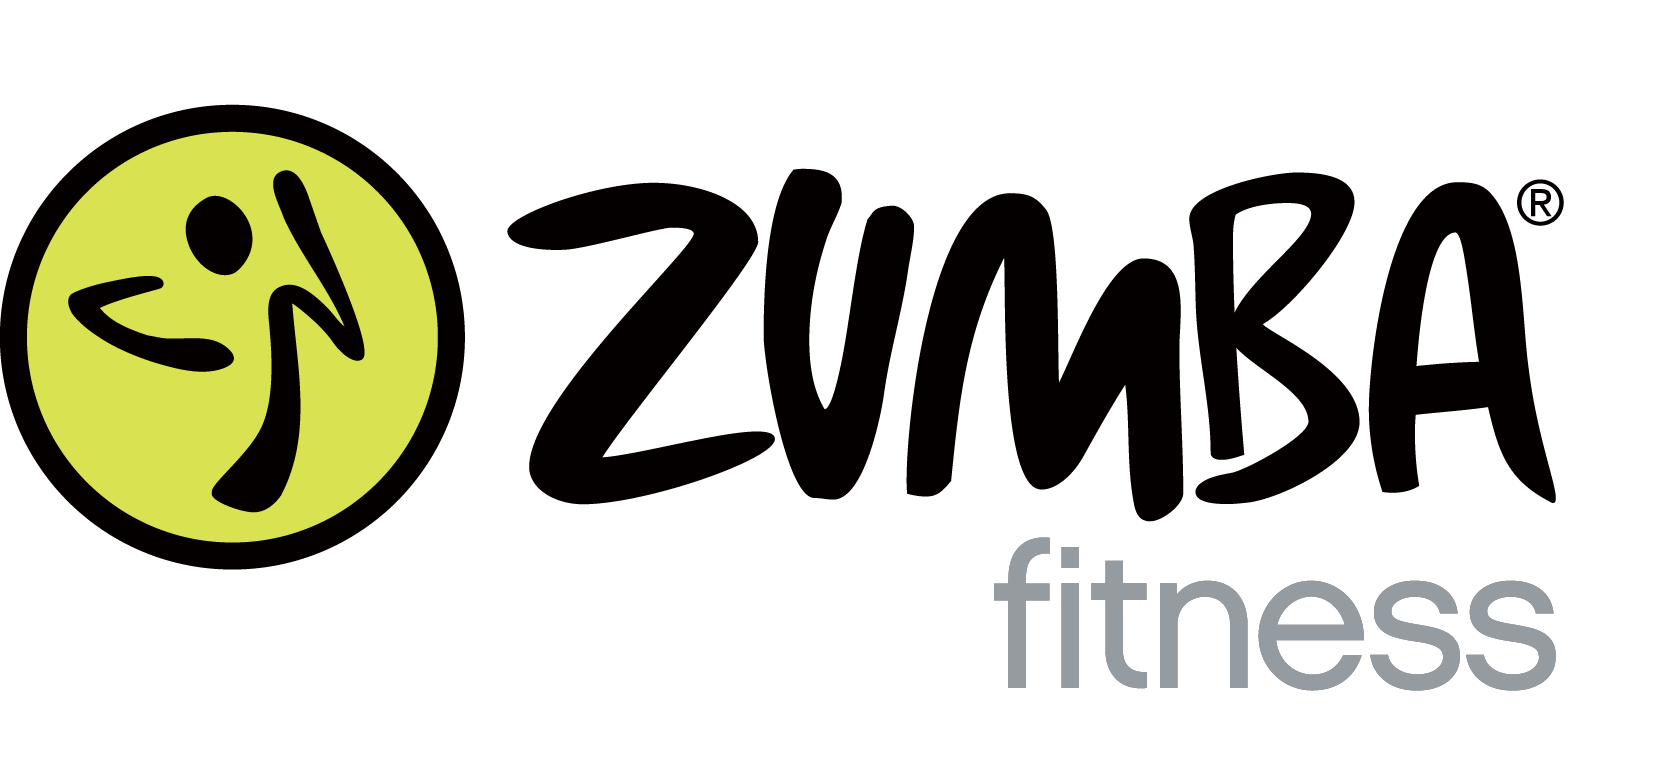 FREE Zumba Dance Fitness Classes Offered by N